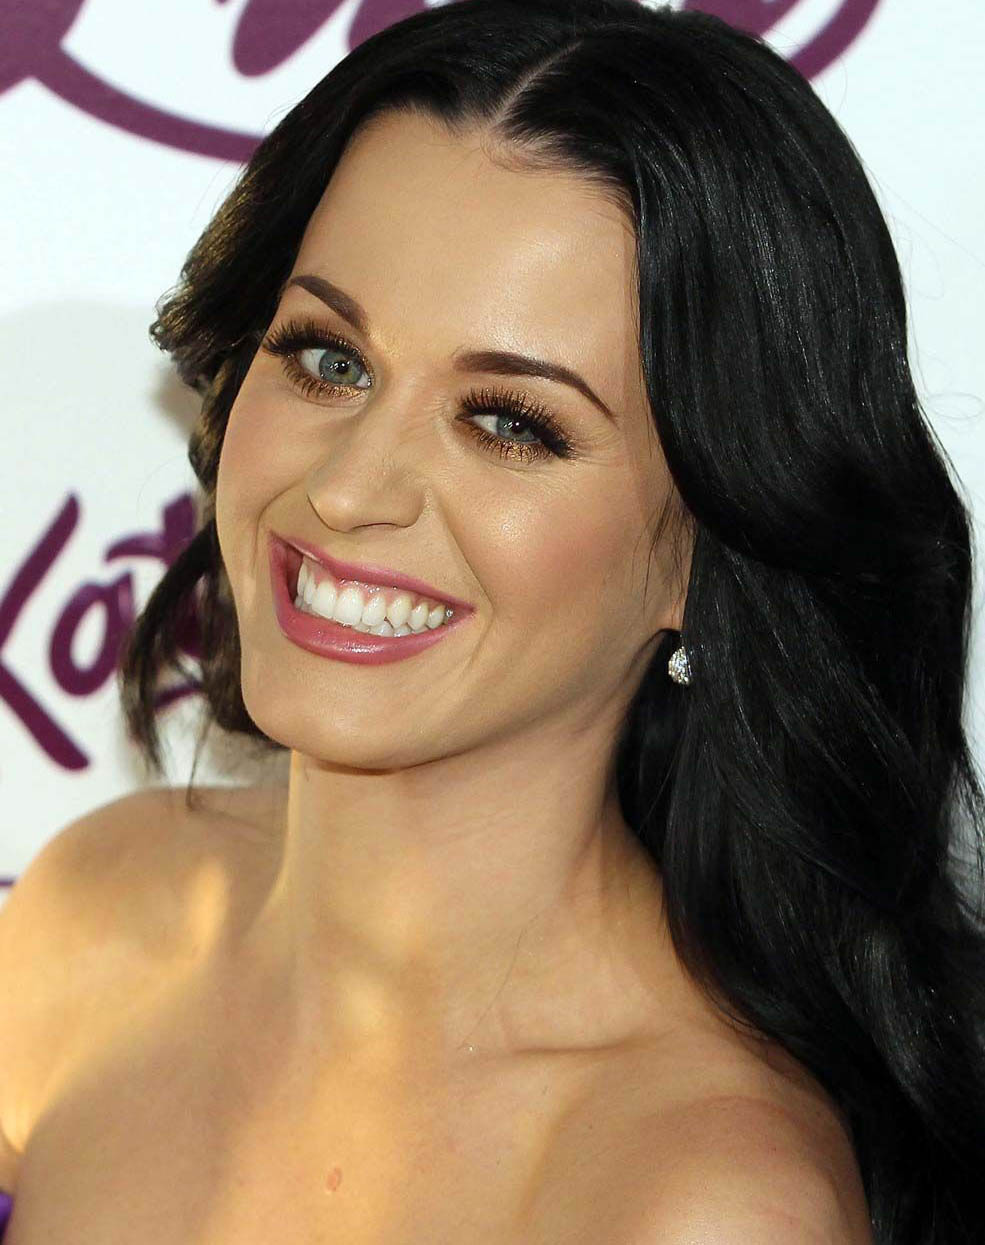 Katy Perry Huge Cleavage Show  Hot Actress Sexy Pics-7097